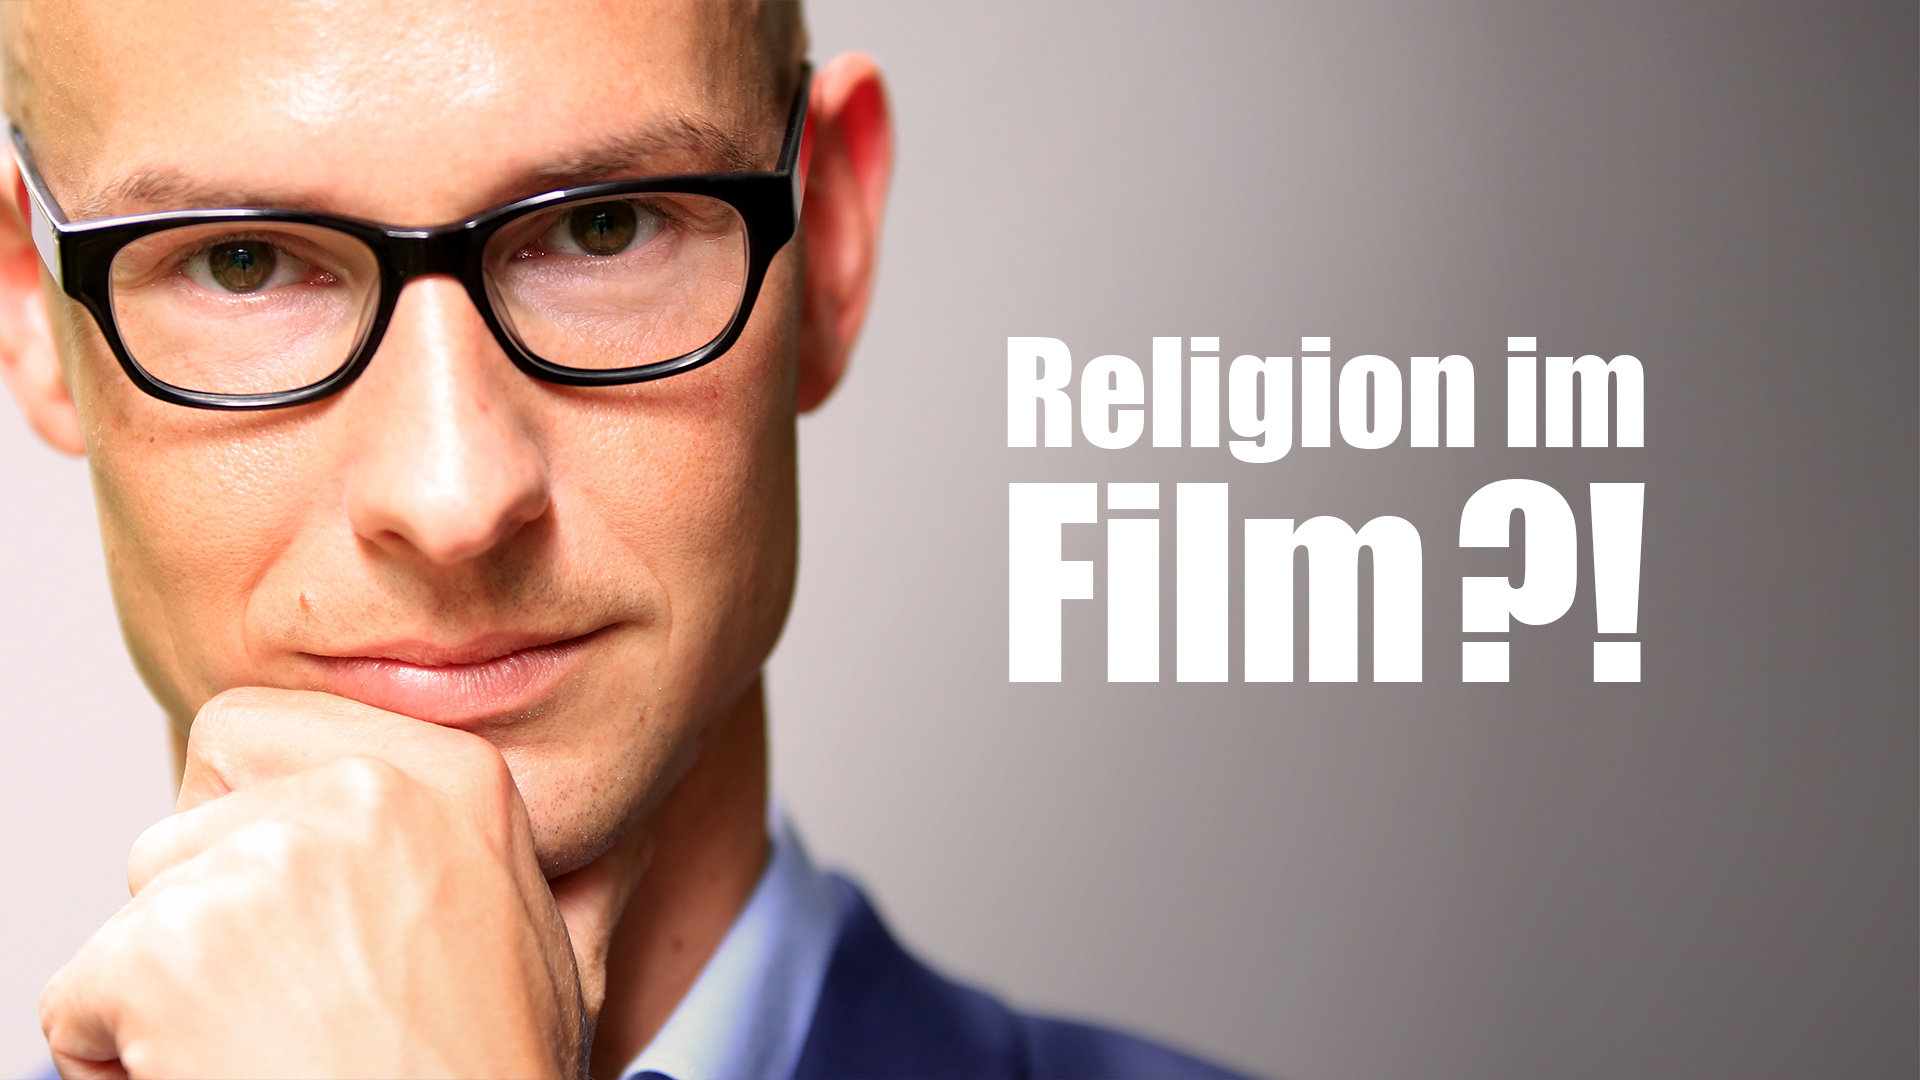 Religion im Film?! Klartext.